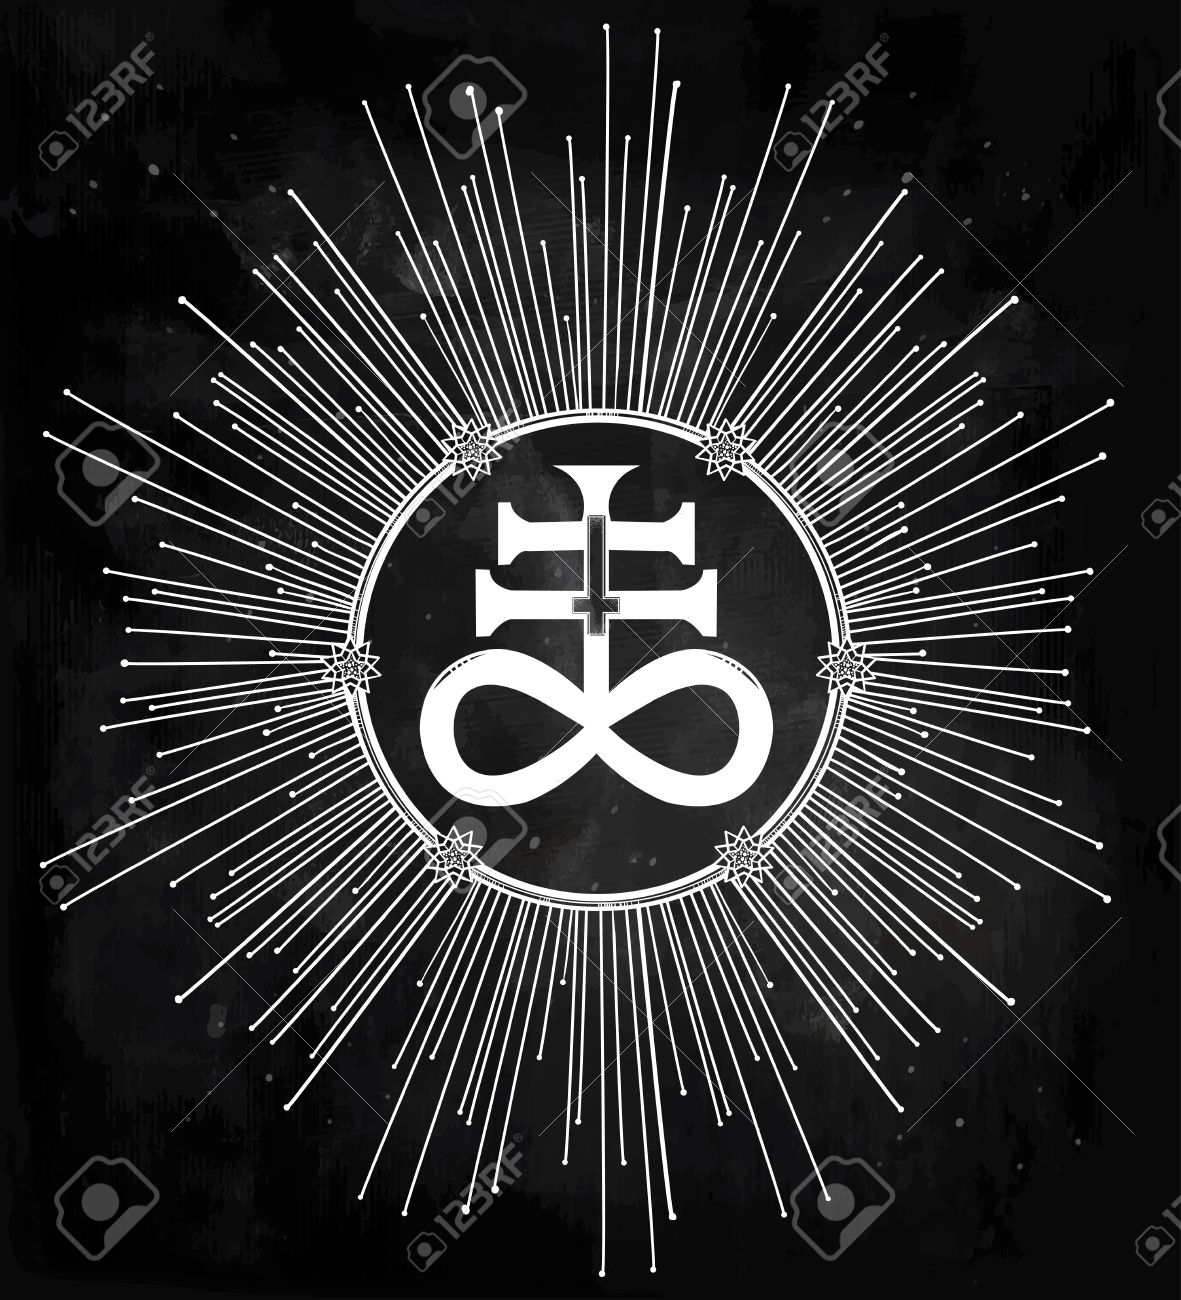 The satanic cross also known as the leviathan cross a variation the satanic cross also known as the leviathan cross a variation of the alchemical symbol buycottarizona